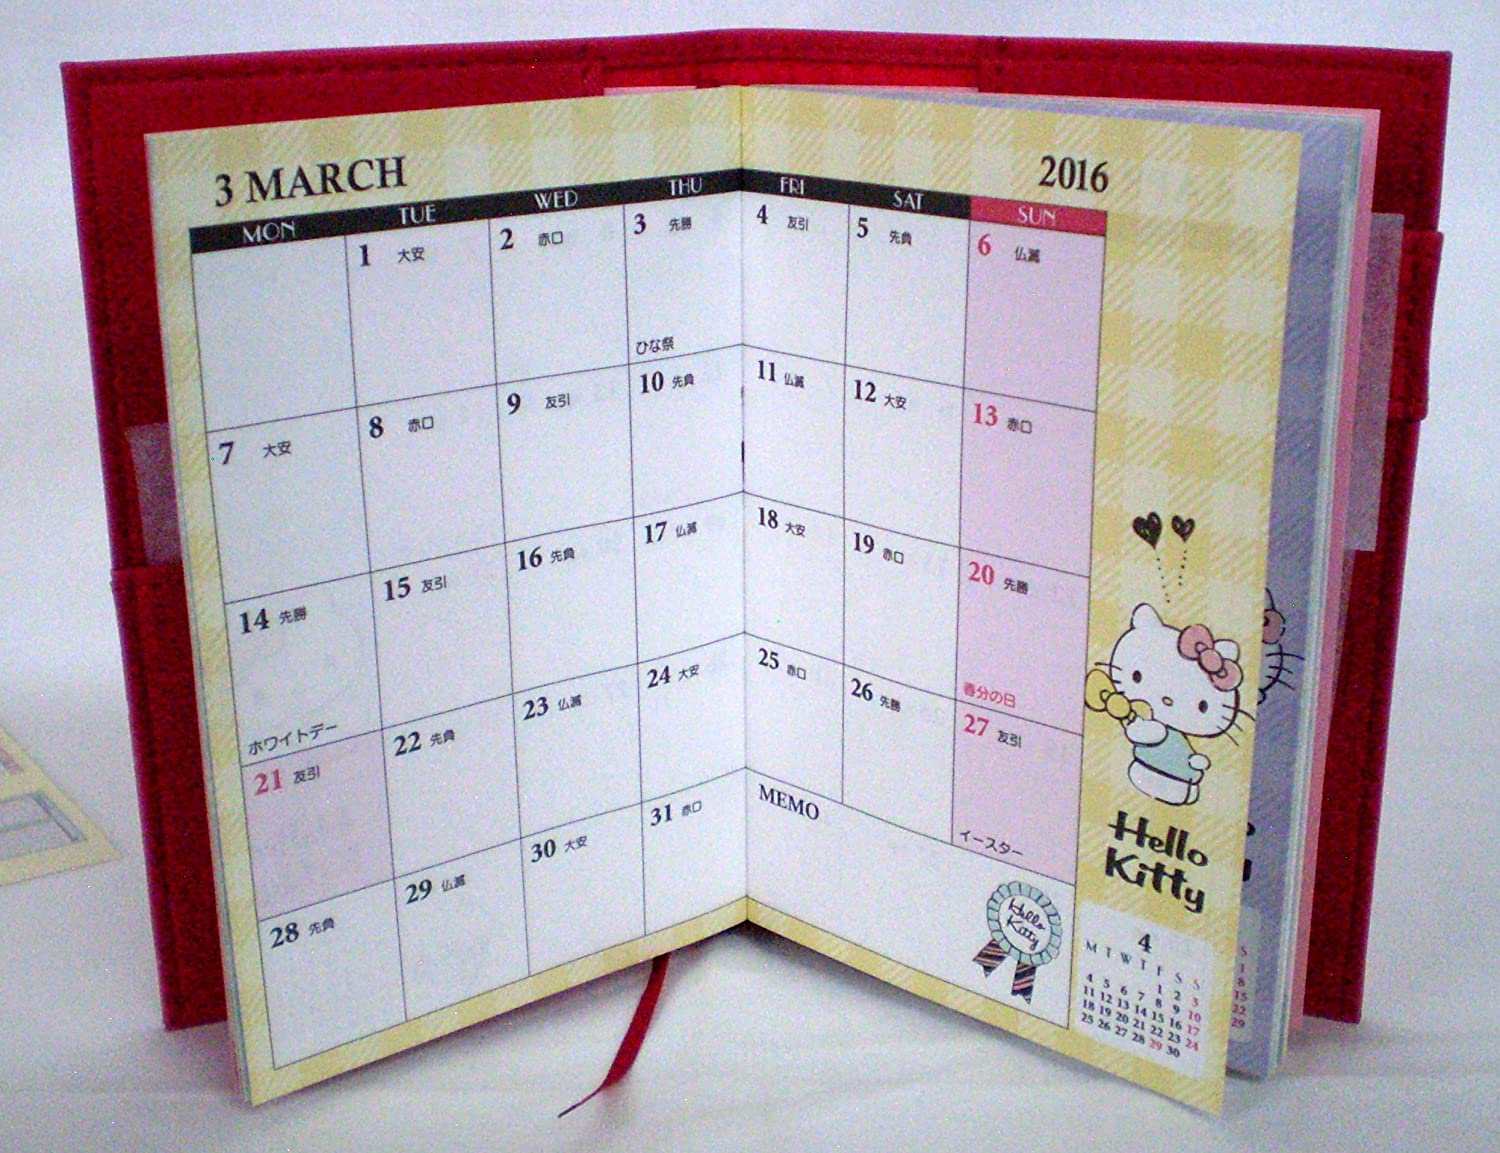 Calendar Planner Book : Sanrio delfino hello kitty schedule book red calendar